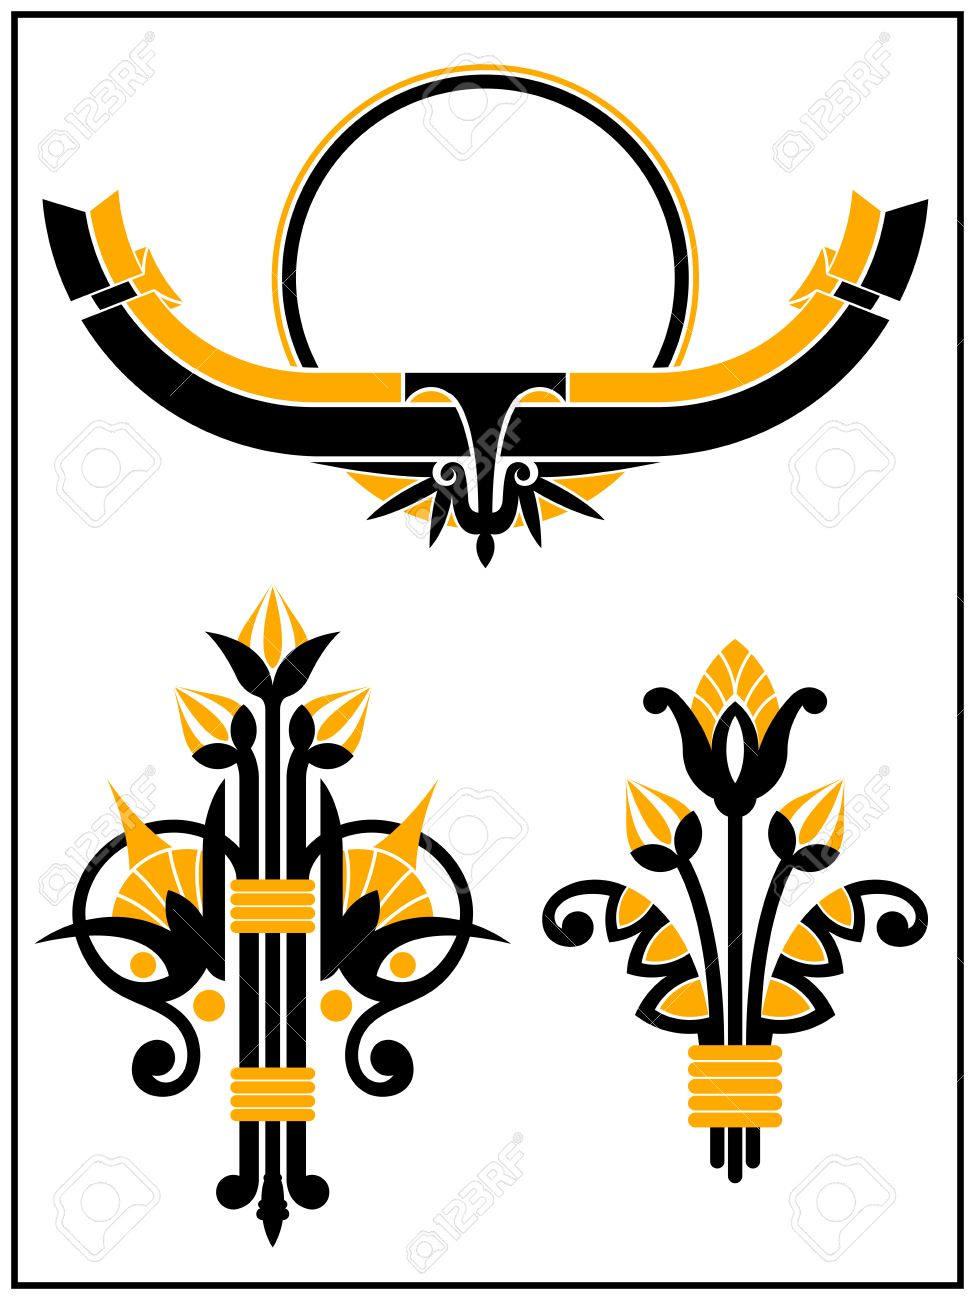 Art Deco Design Elements art deco design elements collection royalty free cliparts, vectors